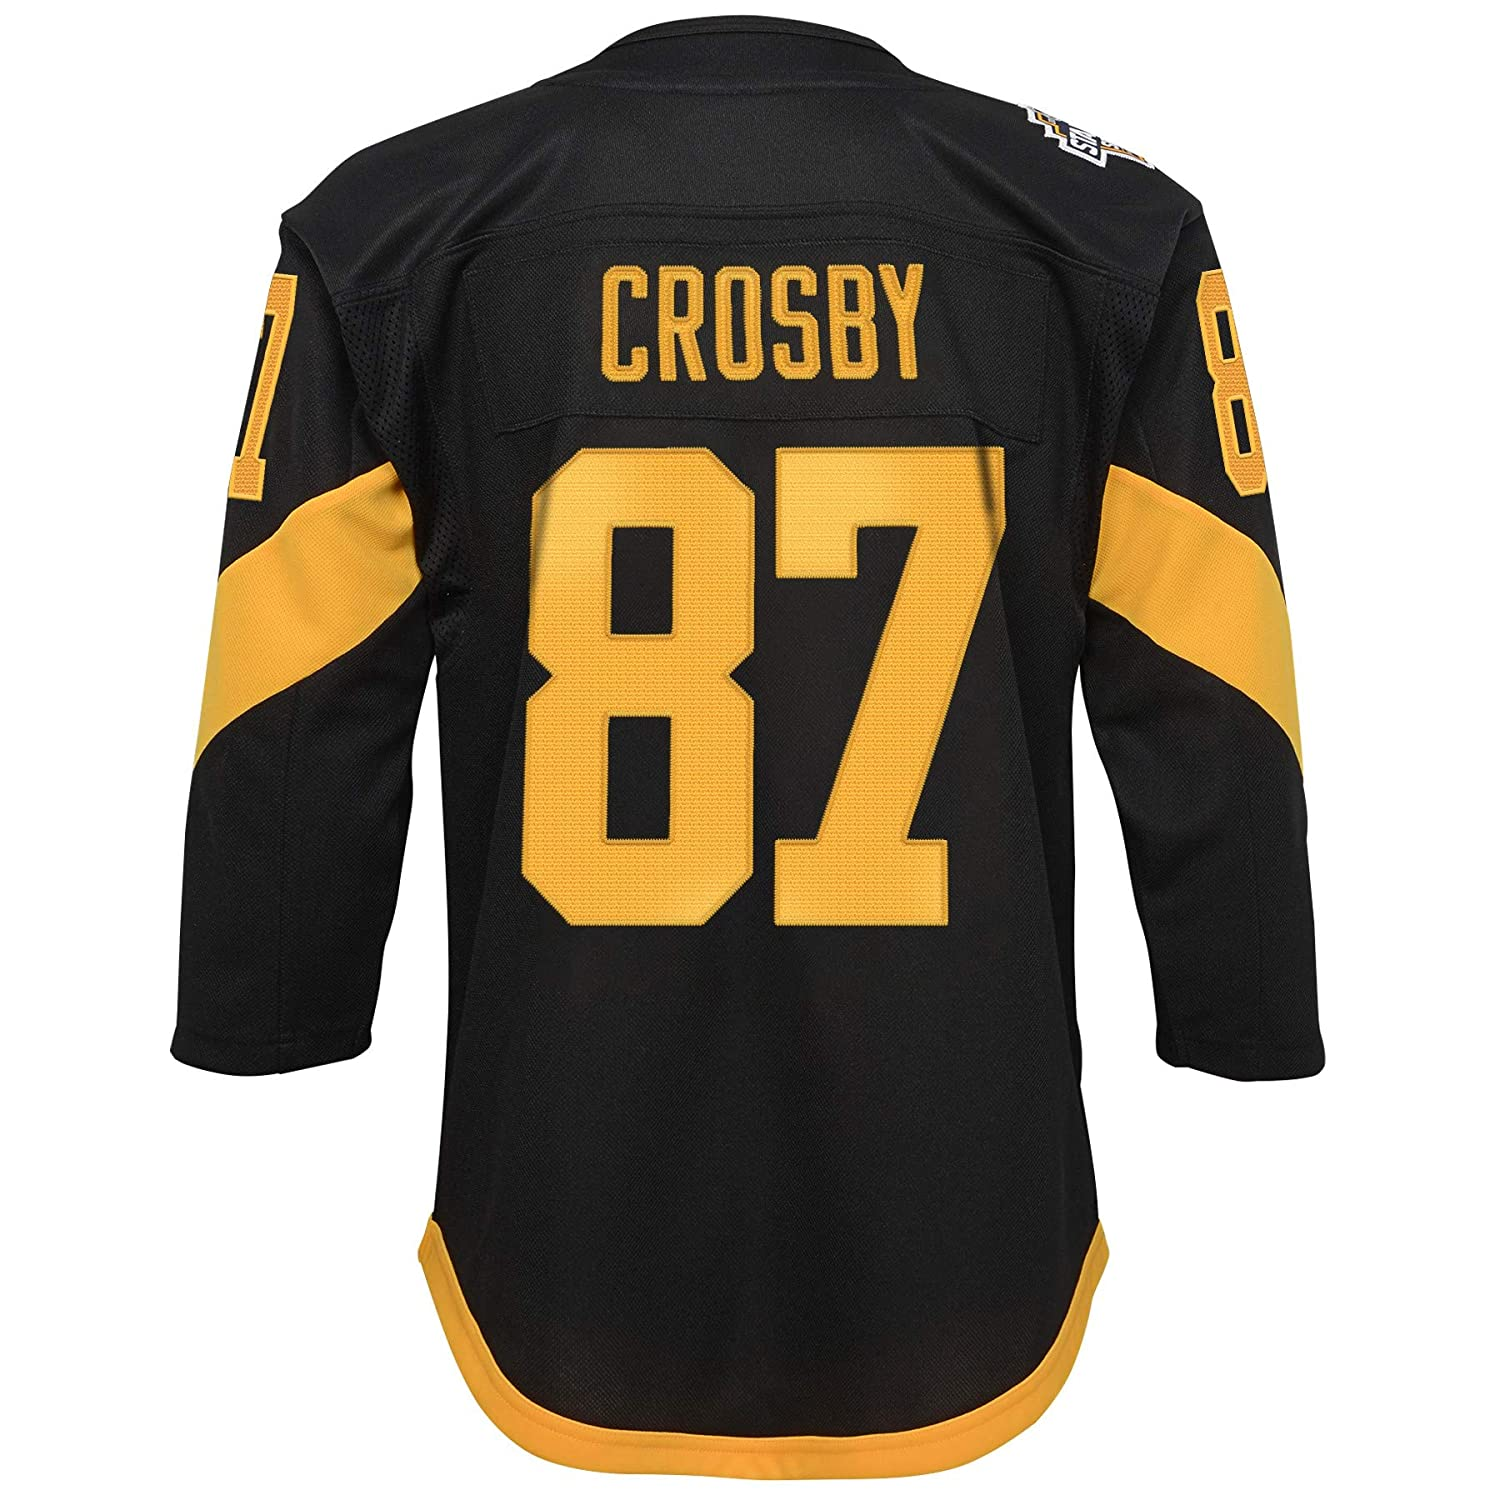 89cc9069 Amazon.com : Outerstuff Pittsburgh Penguins #87 Sidney Crosby Youth Stadium  Series 2019 Black Premier Jersey (Youth L/XL) : Clothing